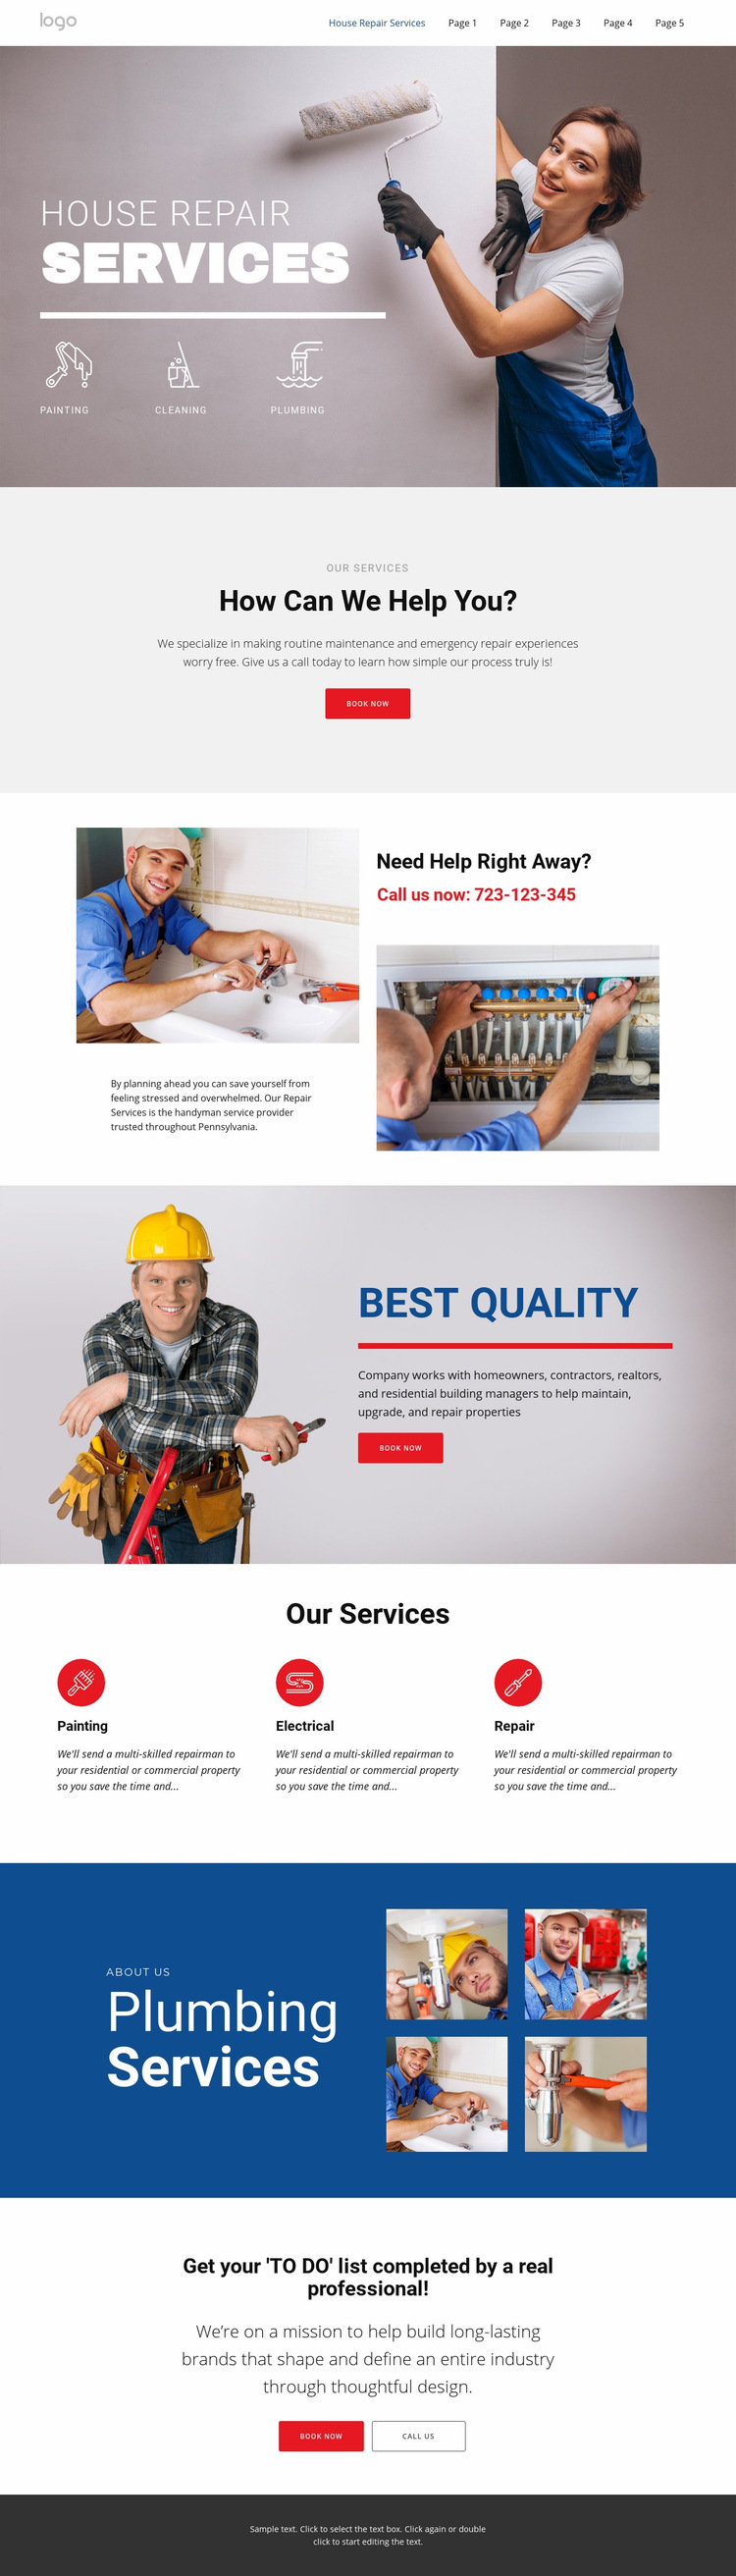 House repair and contruction Web Page Design